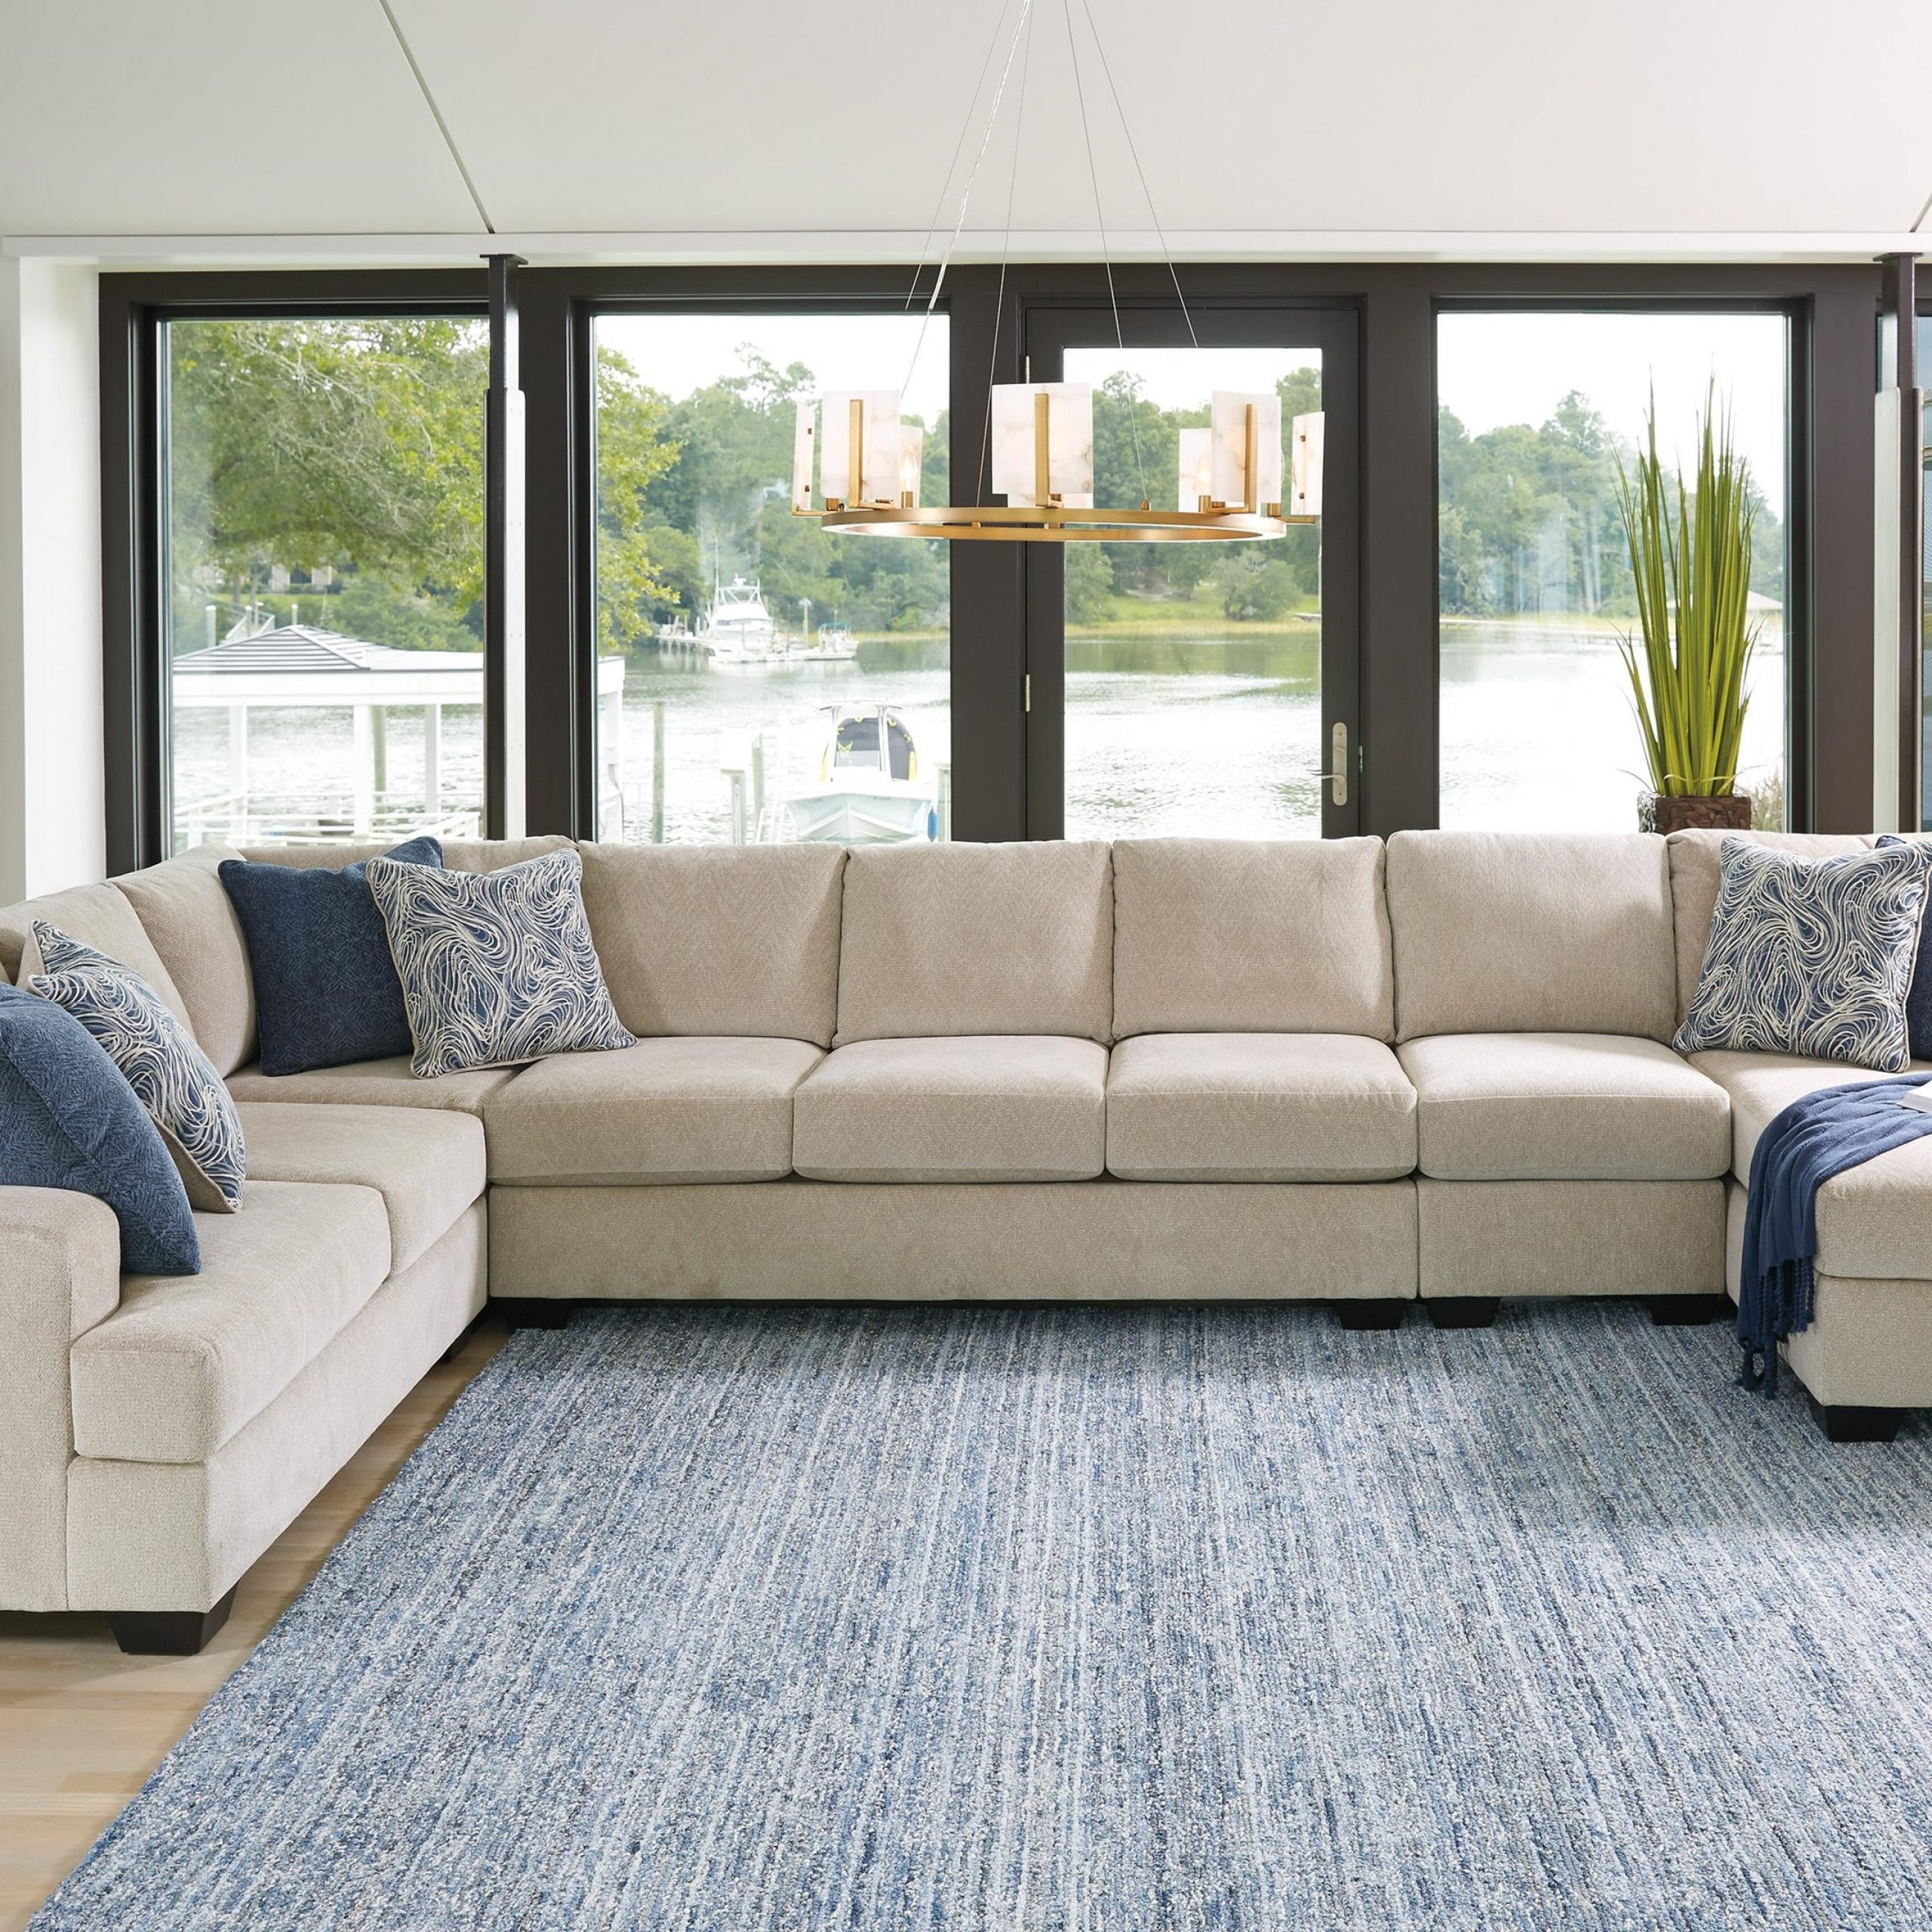 Most Recent Hannah Left Sectional Sofas For Ashley Furniture Enola 6150056+16+99+77+46 Sepia 5pc Left (View 18 of 20)